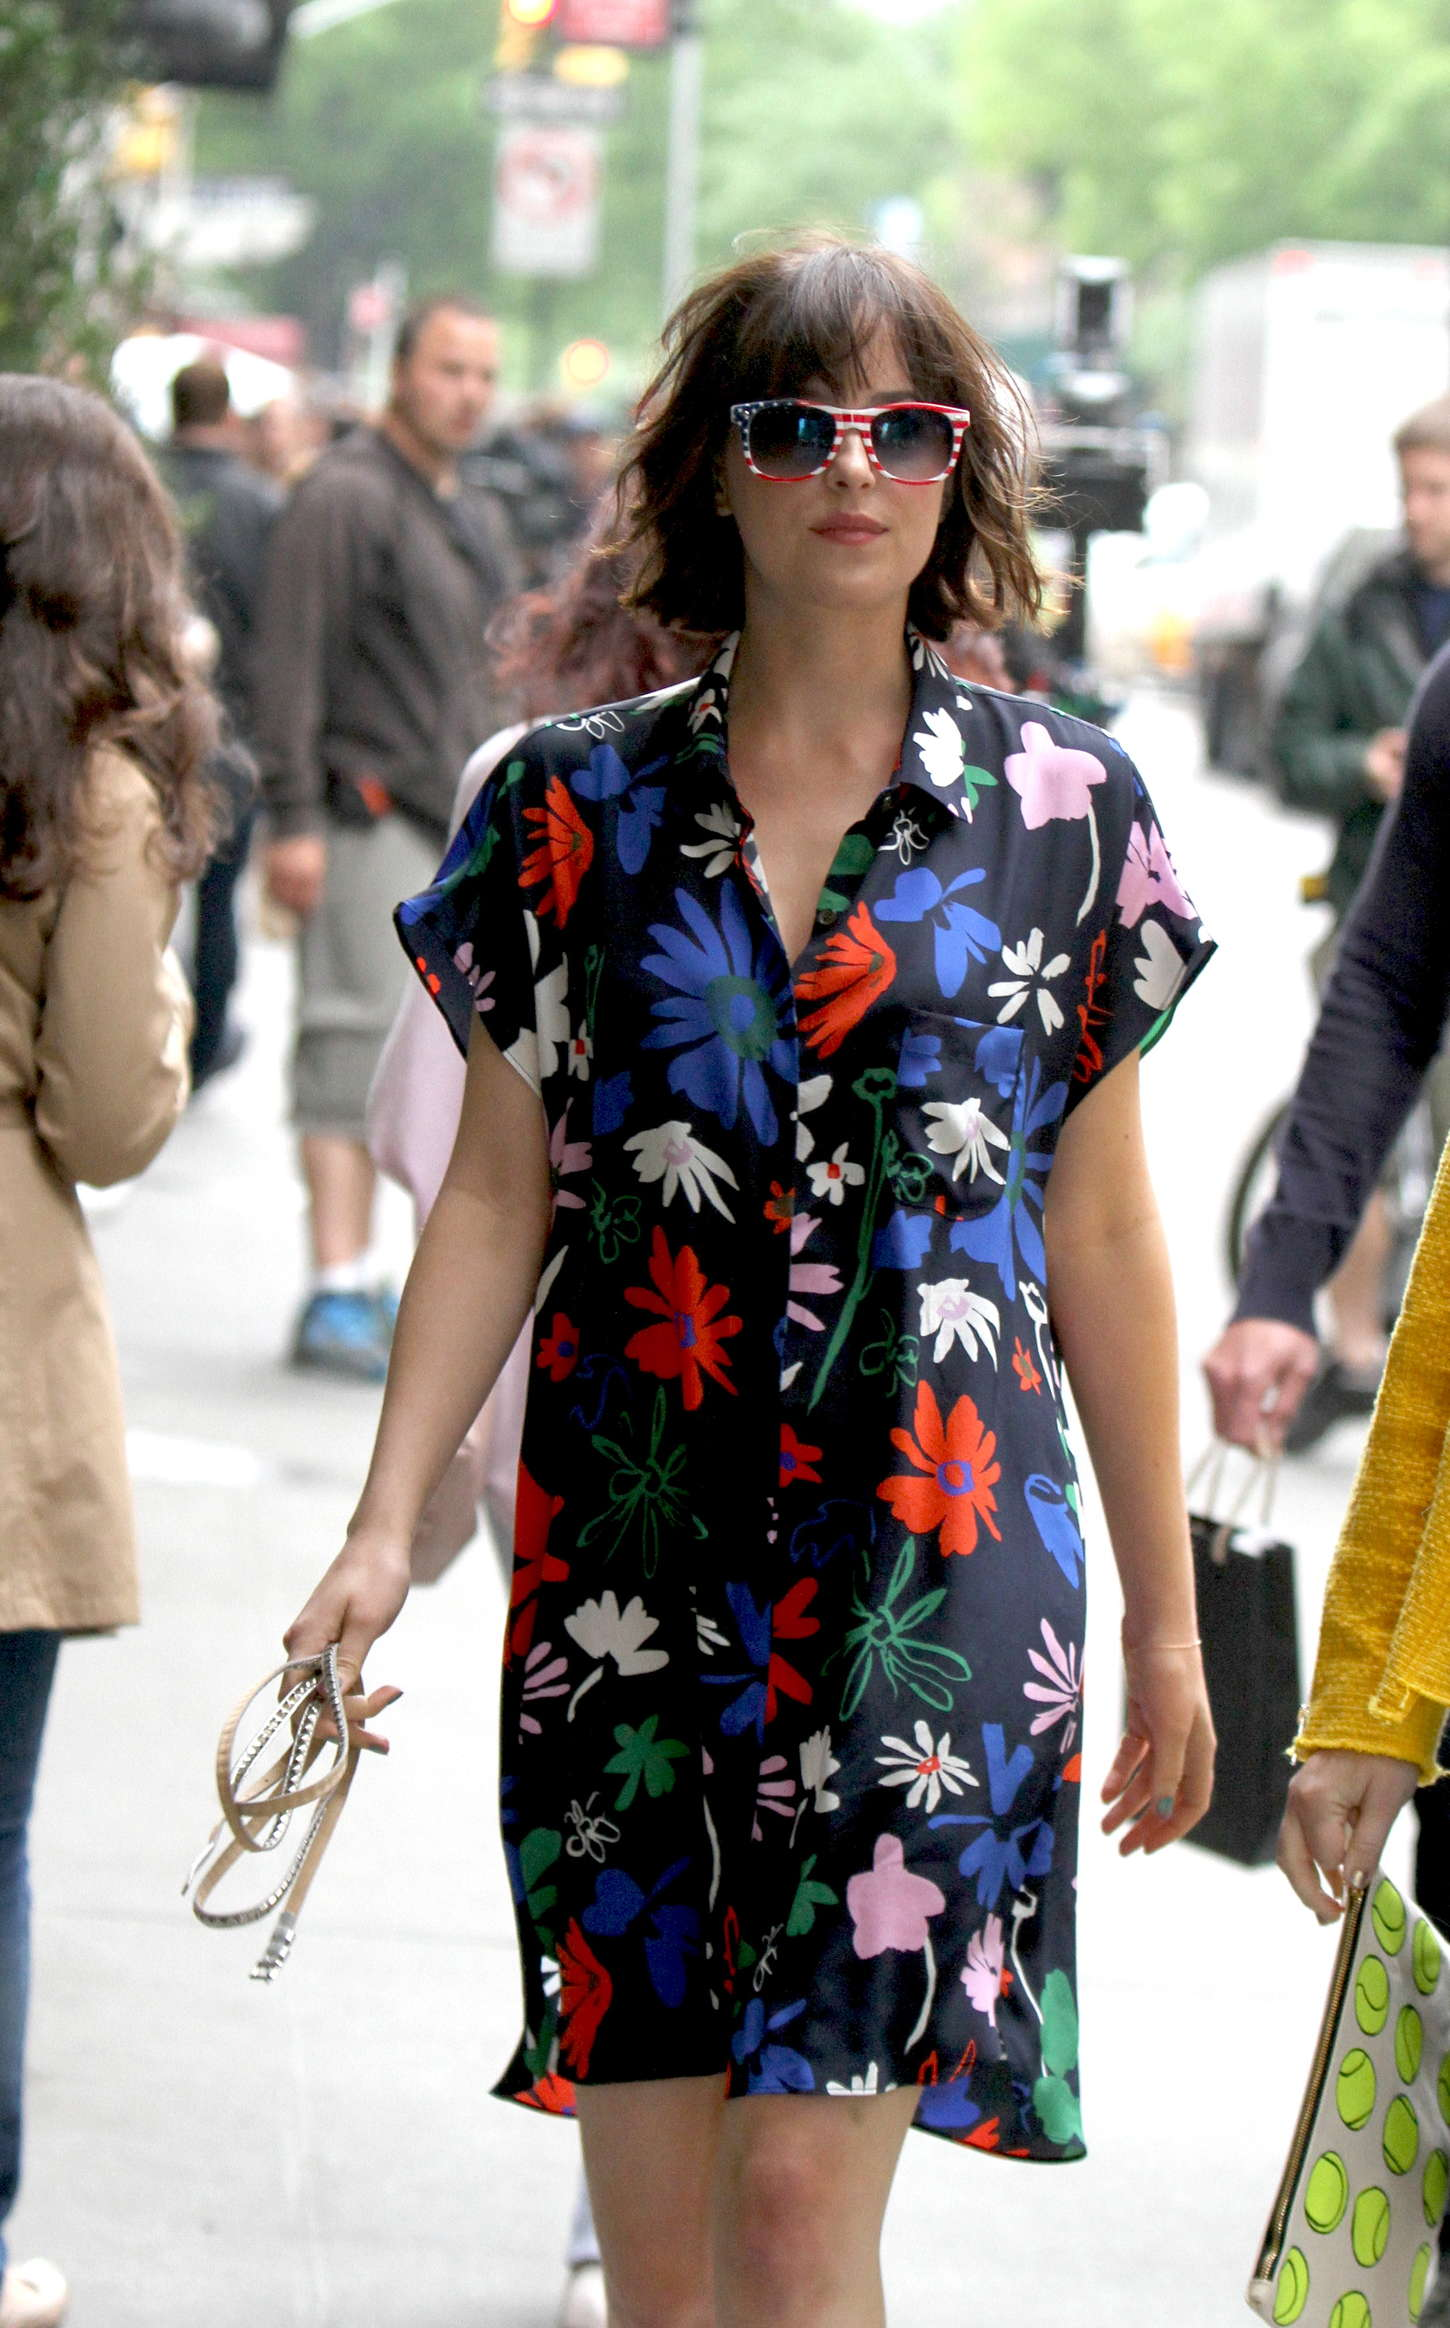 Dakota johnson in floral dress filming how to be single set in nyc ccuart Images